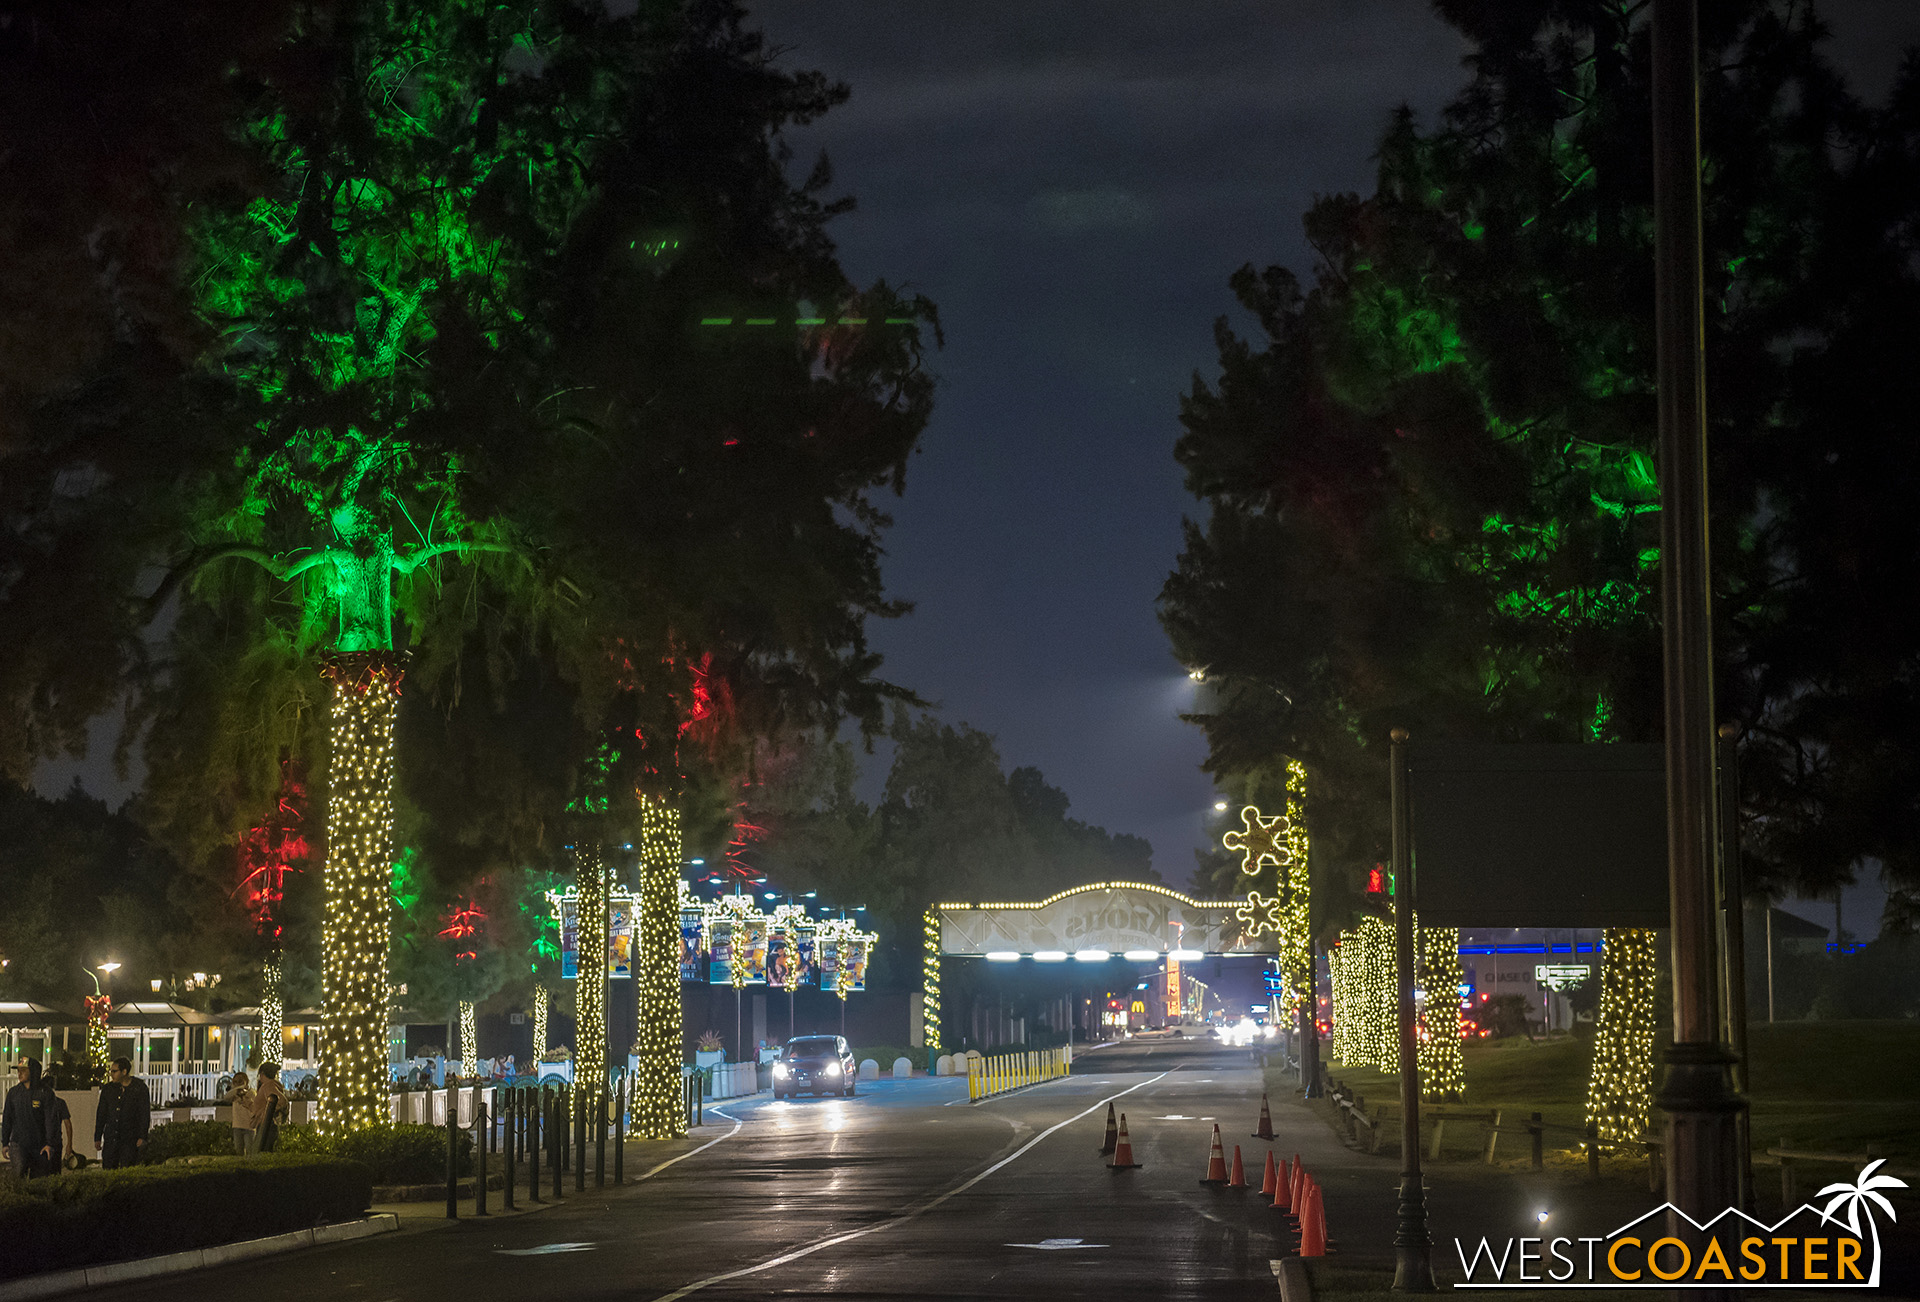 The expanded lighting presence can be seen immediately upon entering the Knott's Resort area, in the form of light-wrapped trees lining Grand Avenue.